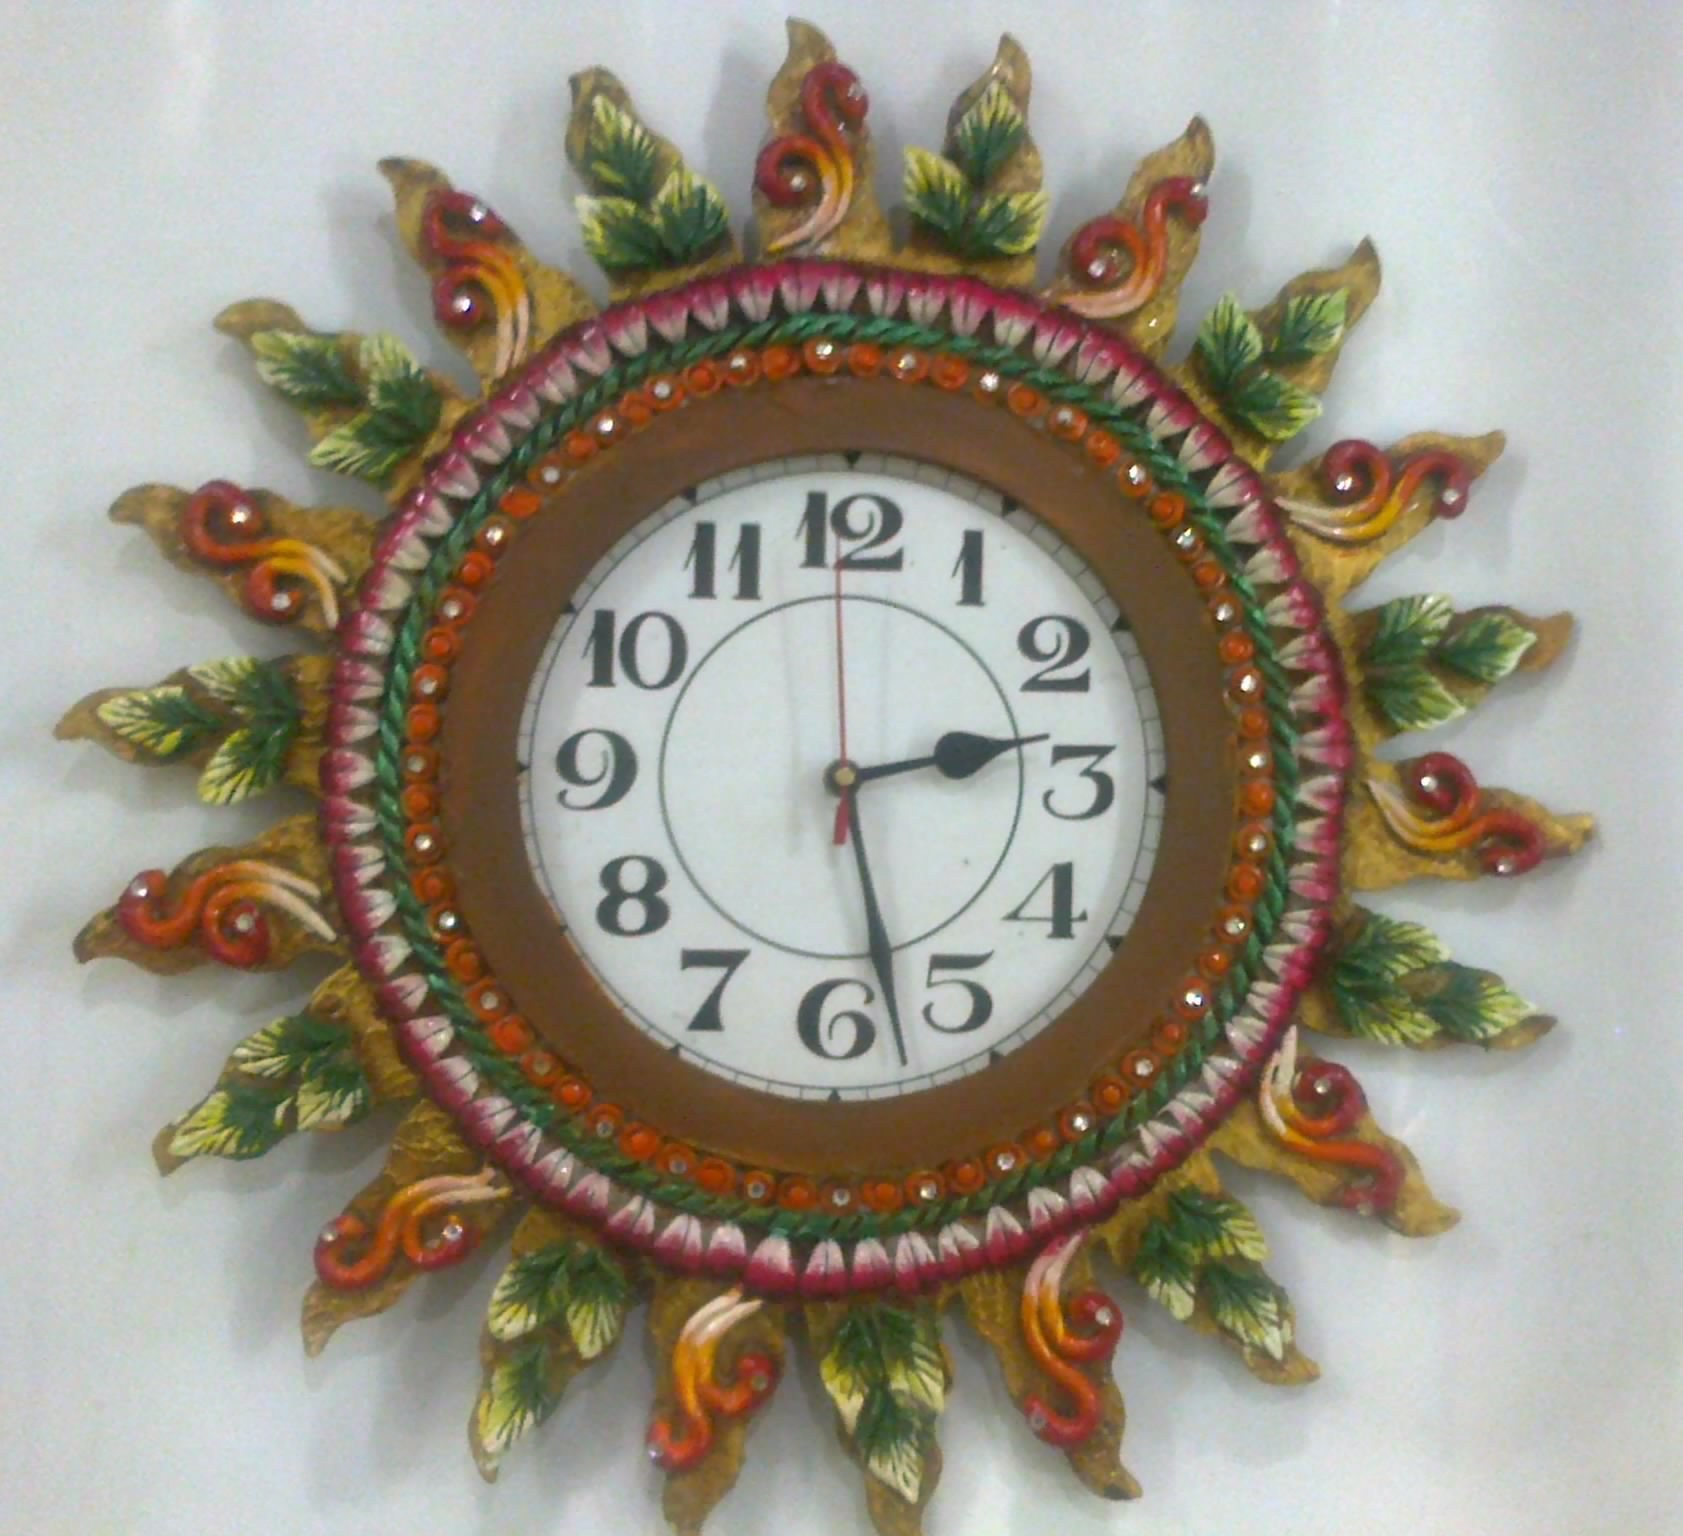 Attrative Handmade Wall Clock Home Decor Antique Design Wooden Base Gift Item Online Shopping